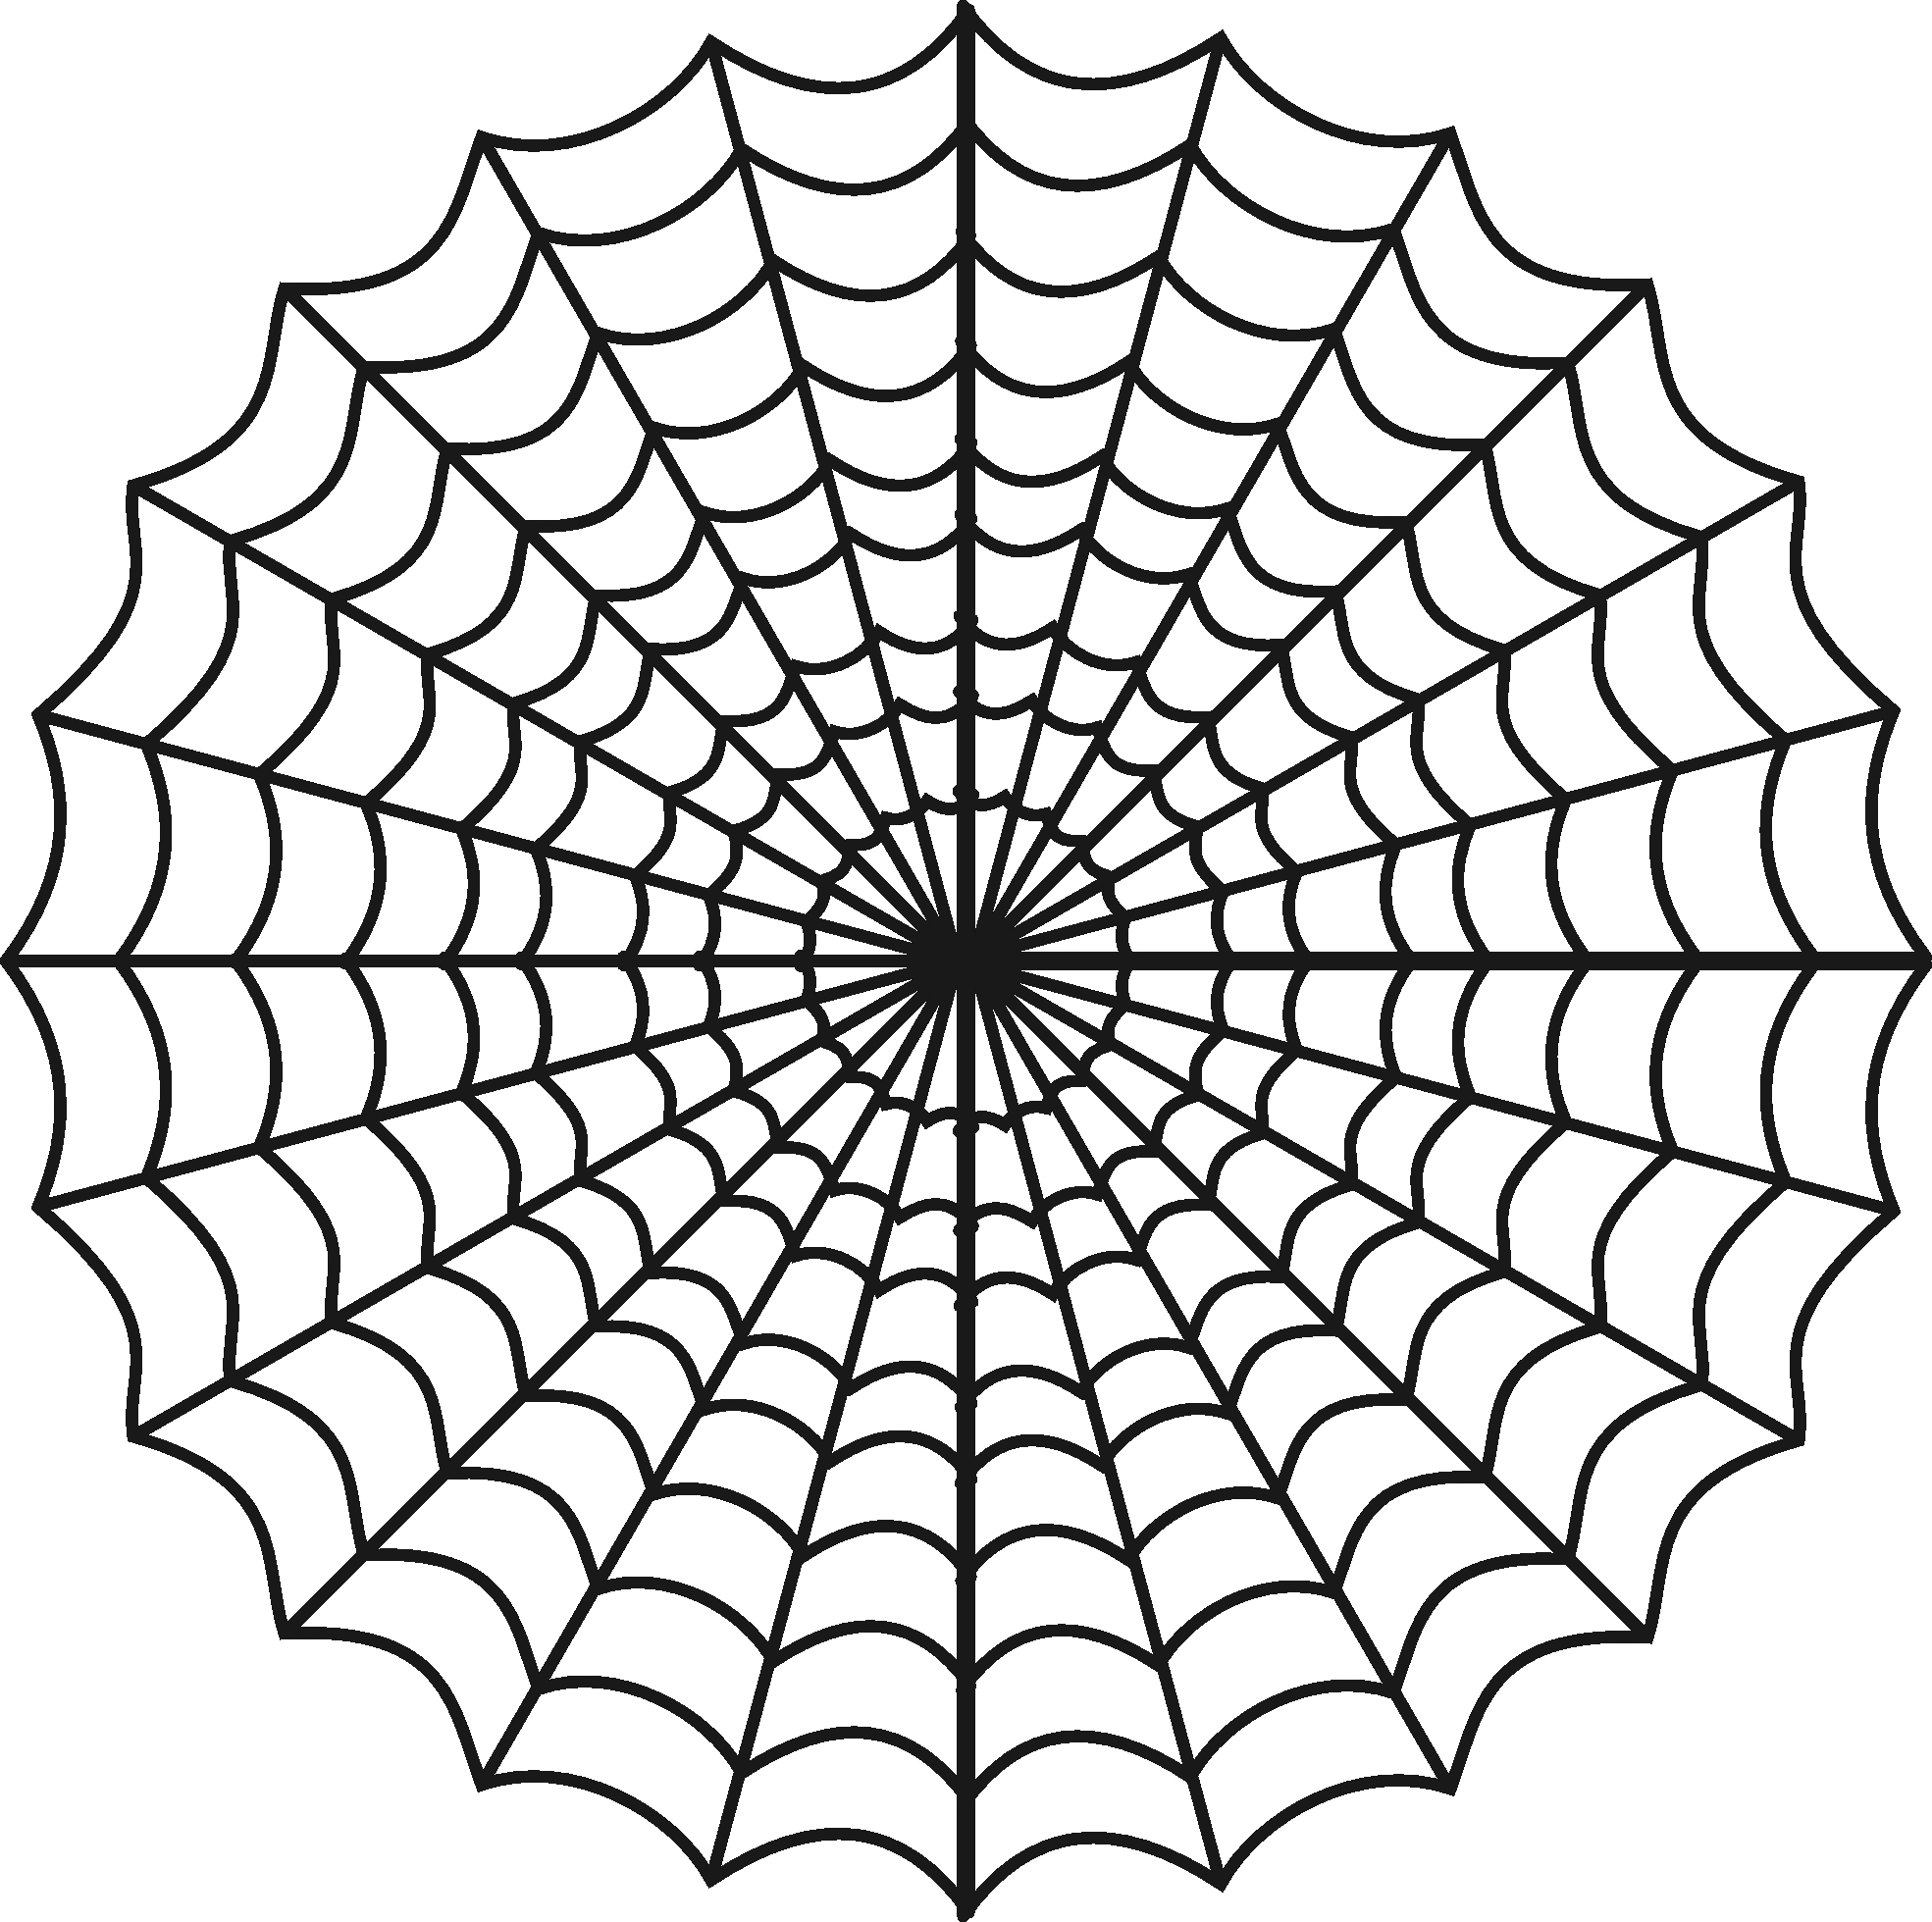 Spiderman Web Template Beautiful Spider Web Transparent Png Free Icons and Png